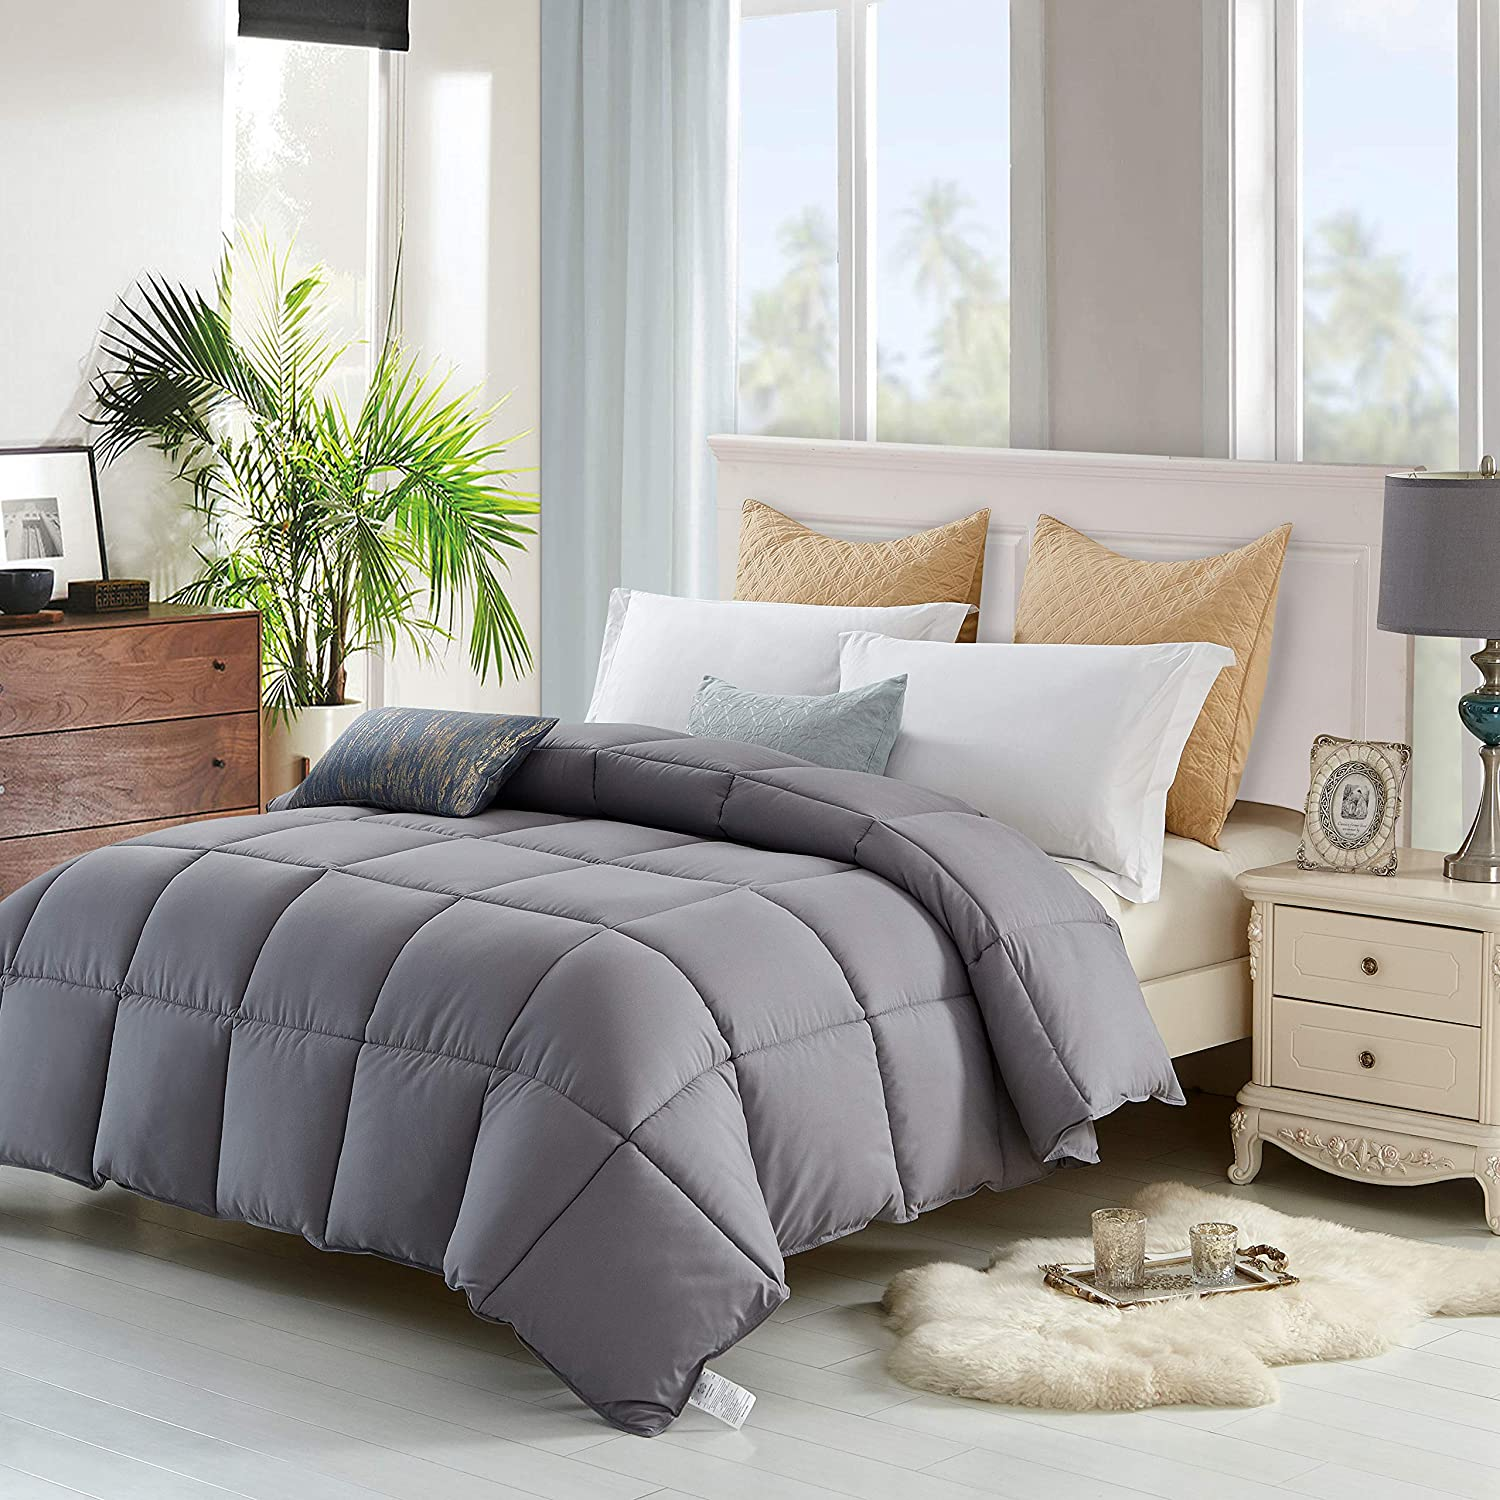 The Ultimate All Season Comforter Deal Hotel Luxury Down Alternative Comforter Duvet Insert with Tabs Washable and Hypoallergenic (Queen): Home & Kitchen